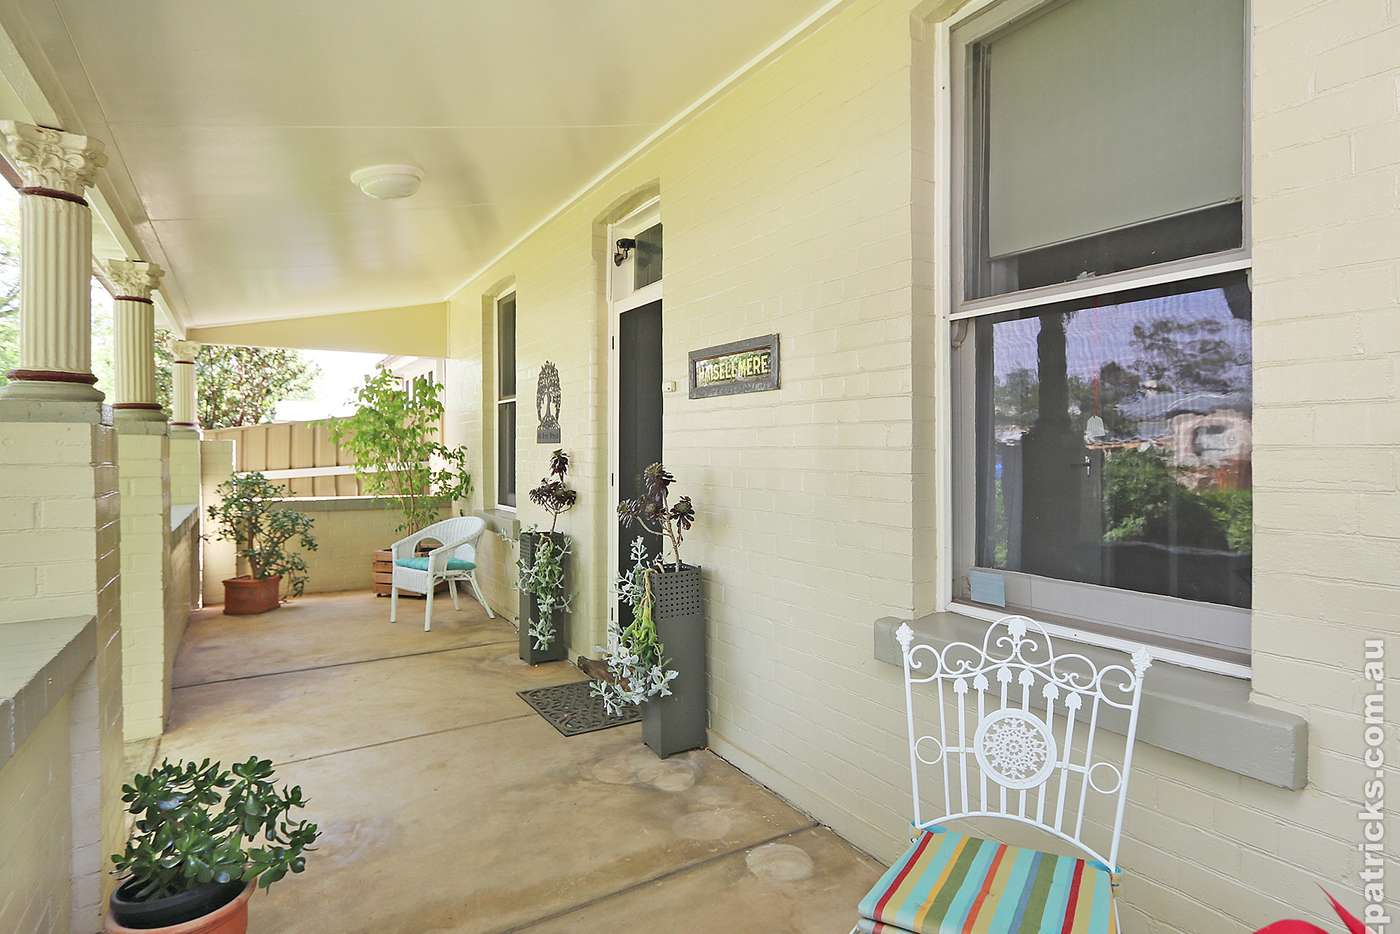 Sixth view of Homely house listing, 95 Best Street, Wagga Wagga NSW 2650